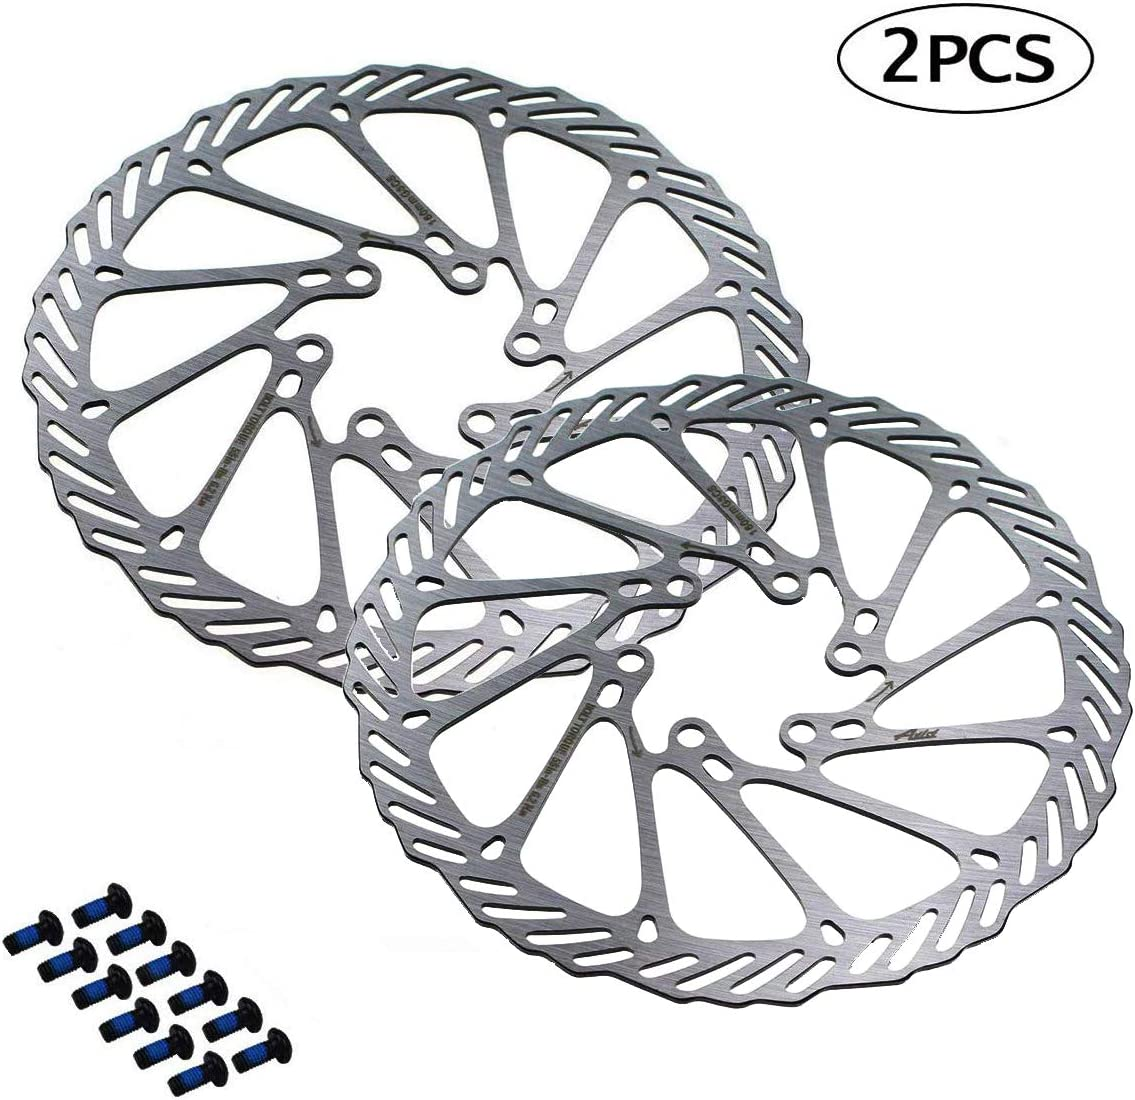 Mountain Bike MTB BNVB 160//180//203mm Disc Brake Rotors,2Pcs//Set G3 Stainless Steel Rotor Bicycle Disc Brake Rotors with Bolts for Road Bike BMX